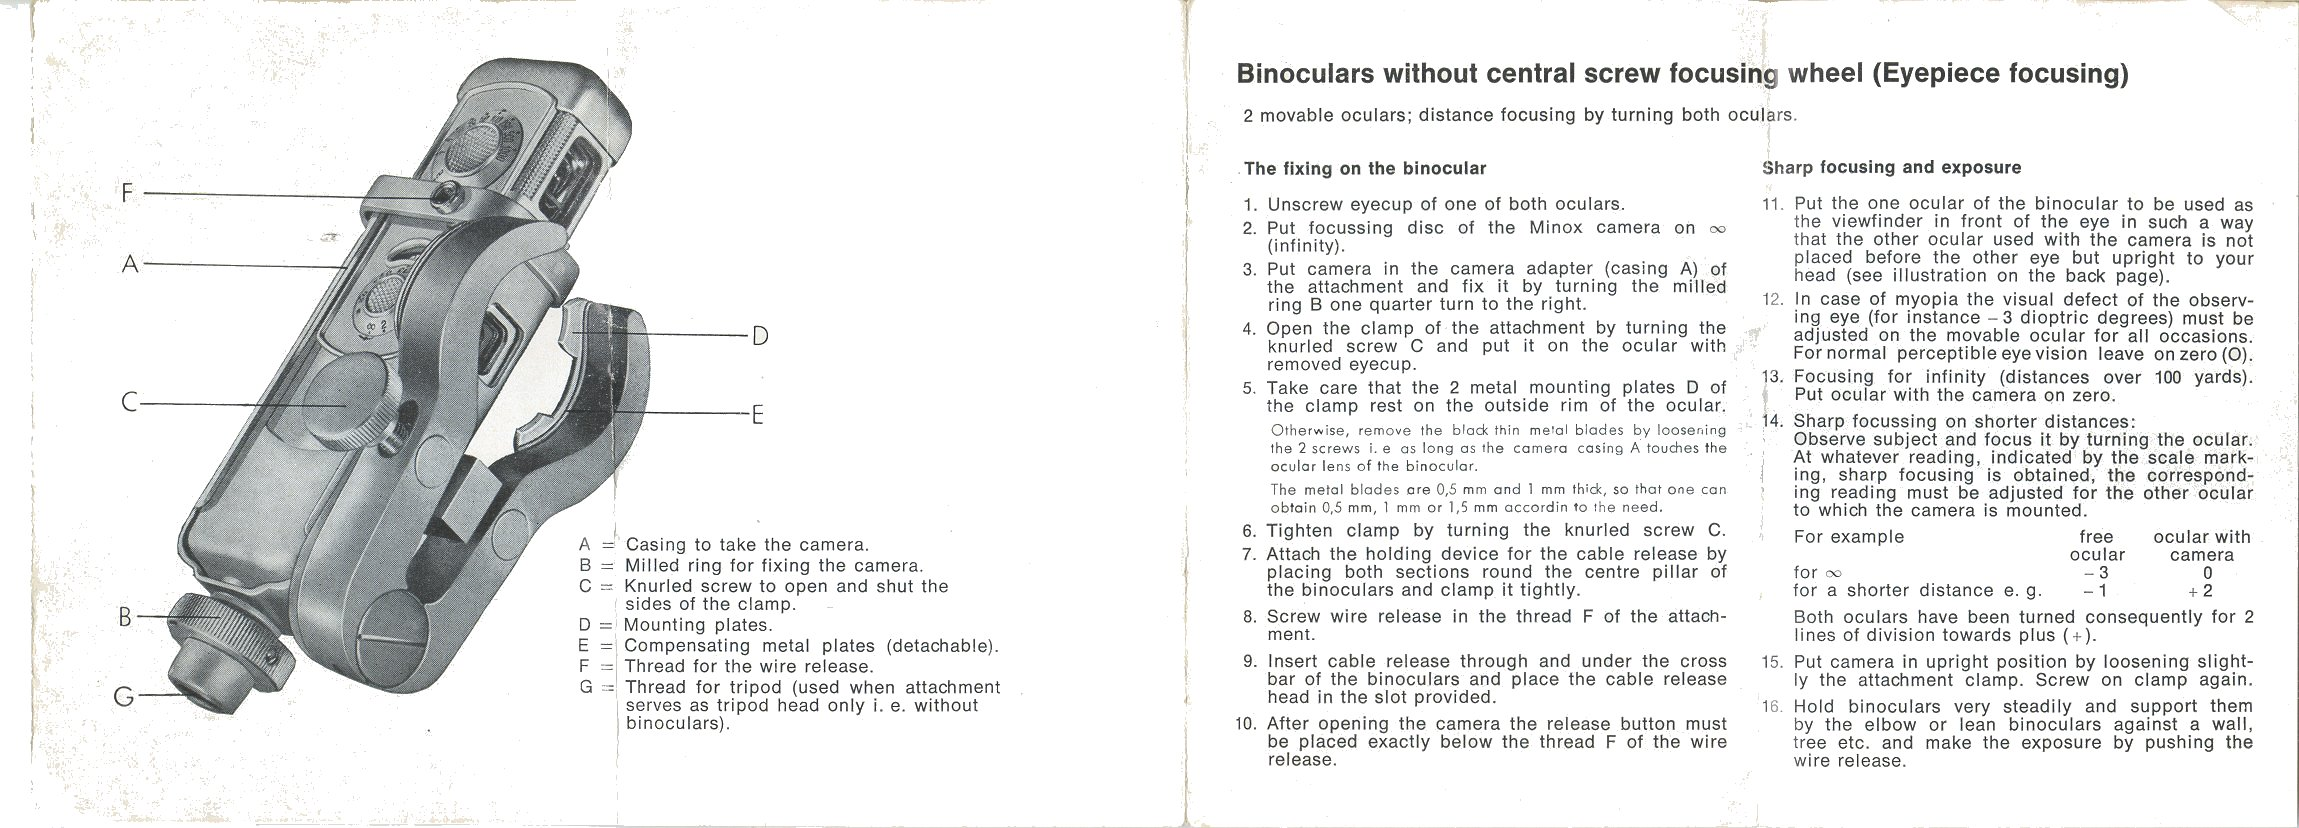 Minox binocular on manuals